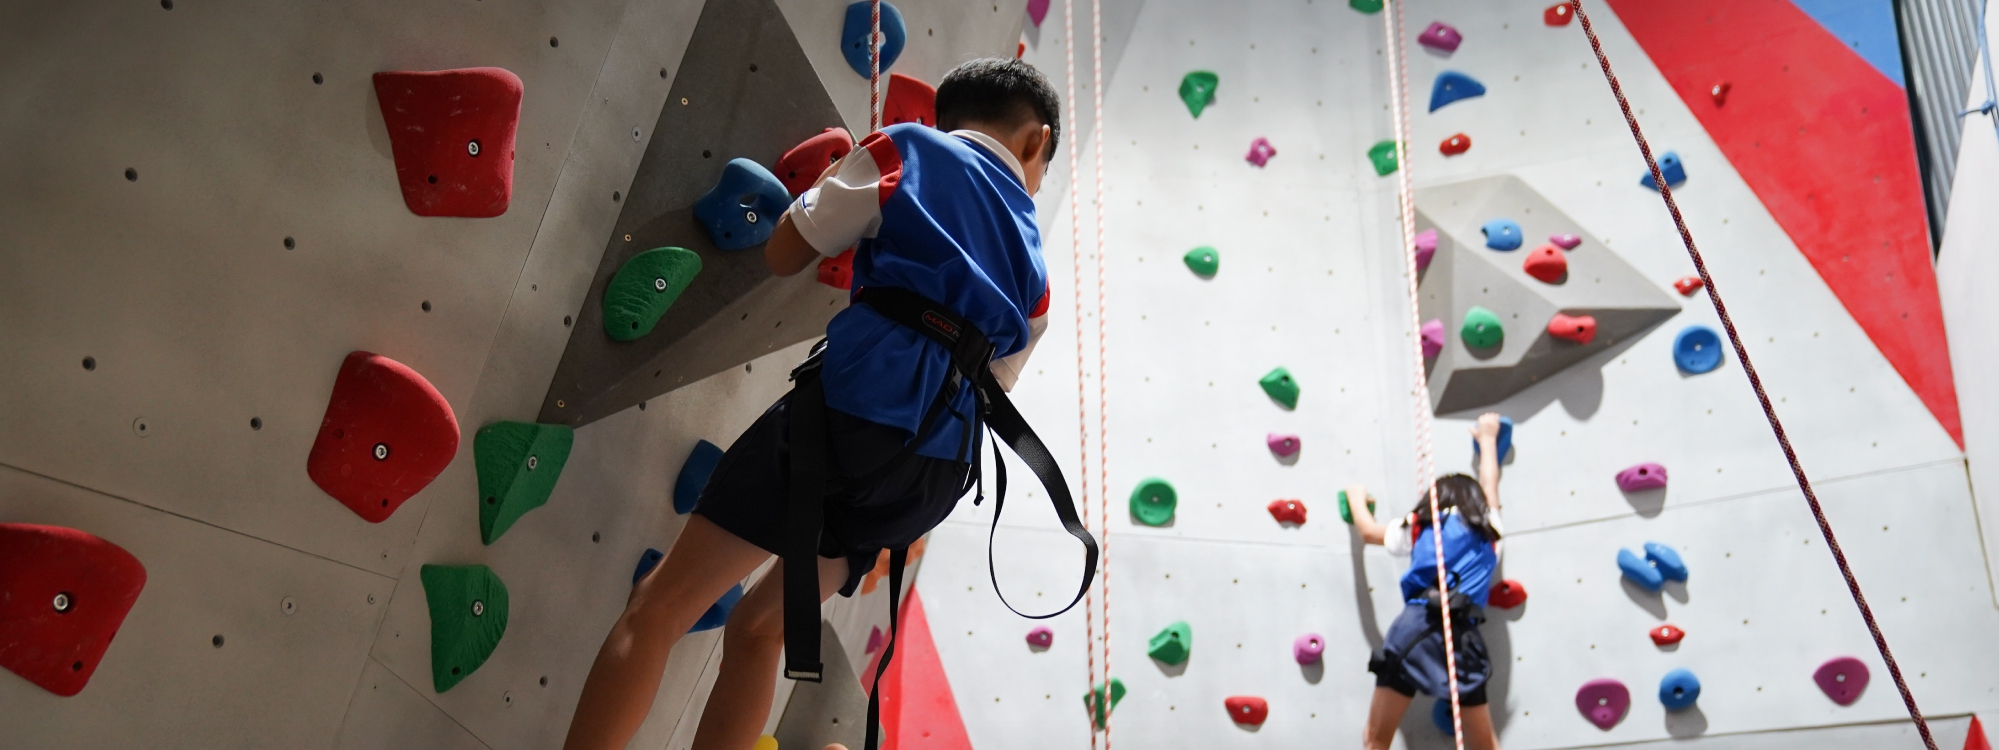 Climbing, a body-strengthening and mind-sharpening activity